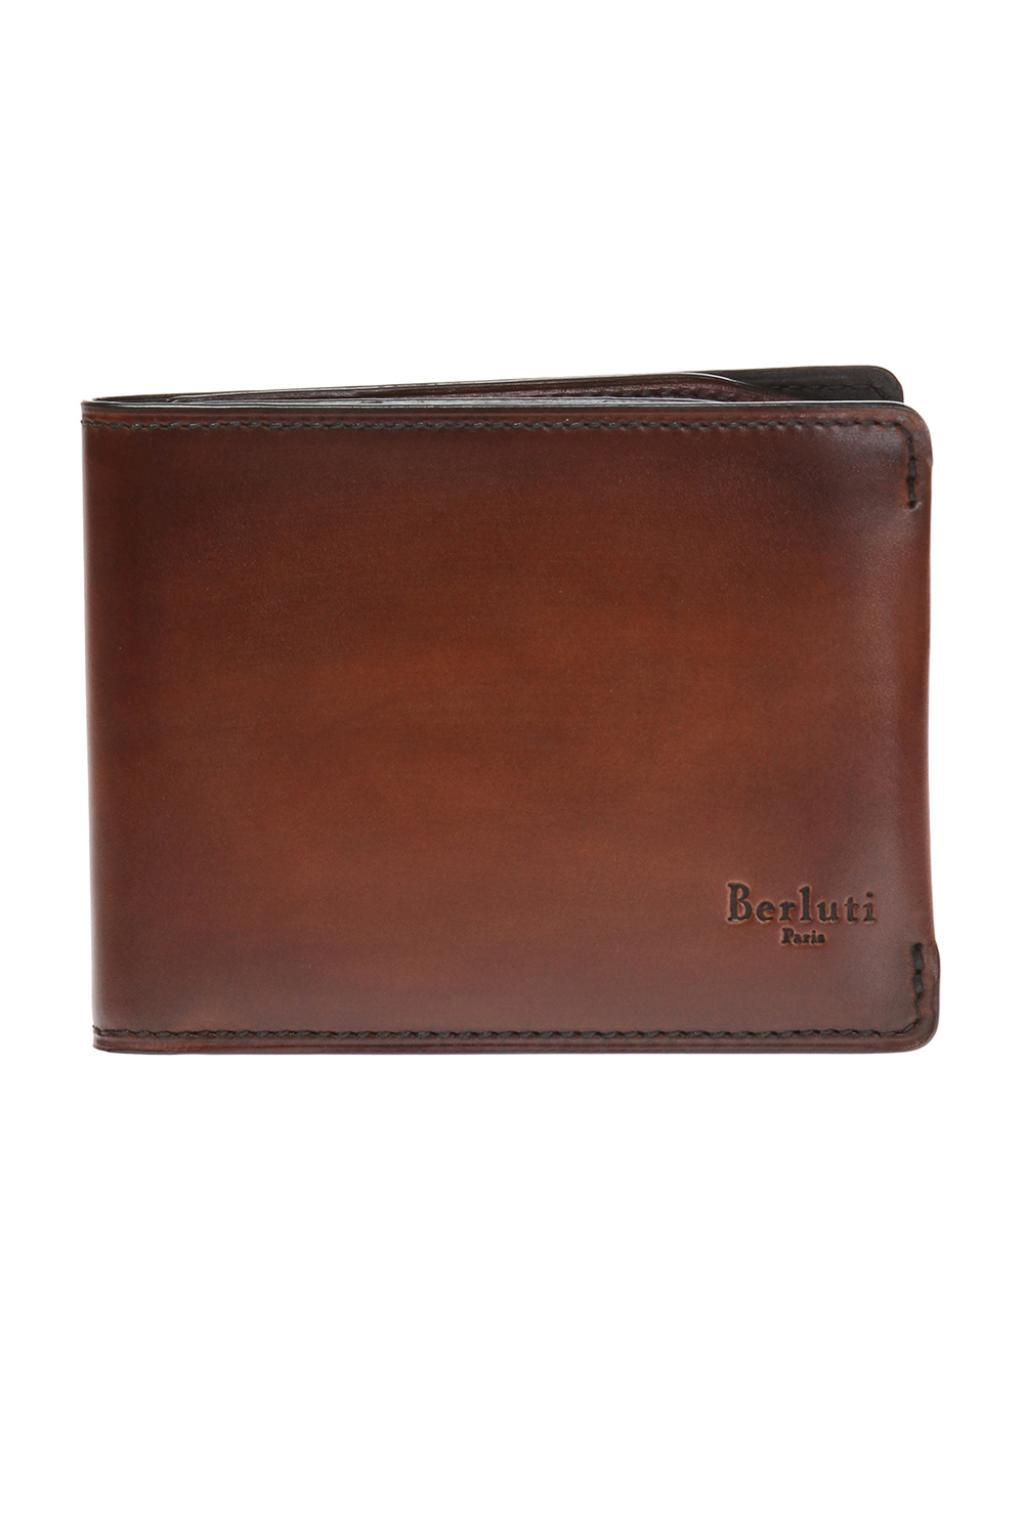 Berluti Leather Bi-fold Wallet With Logo in Brown for Men - Lyst